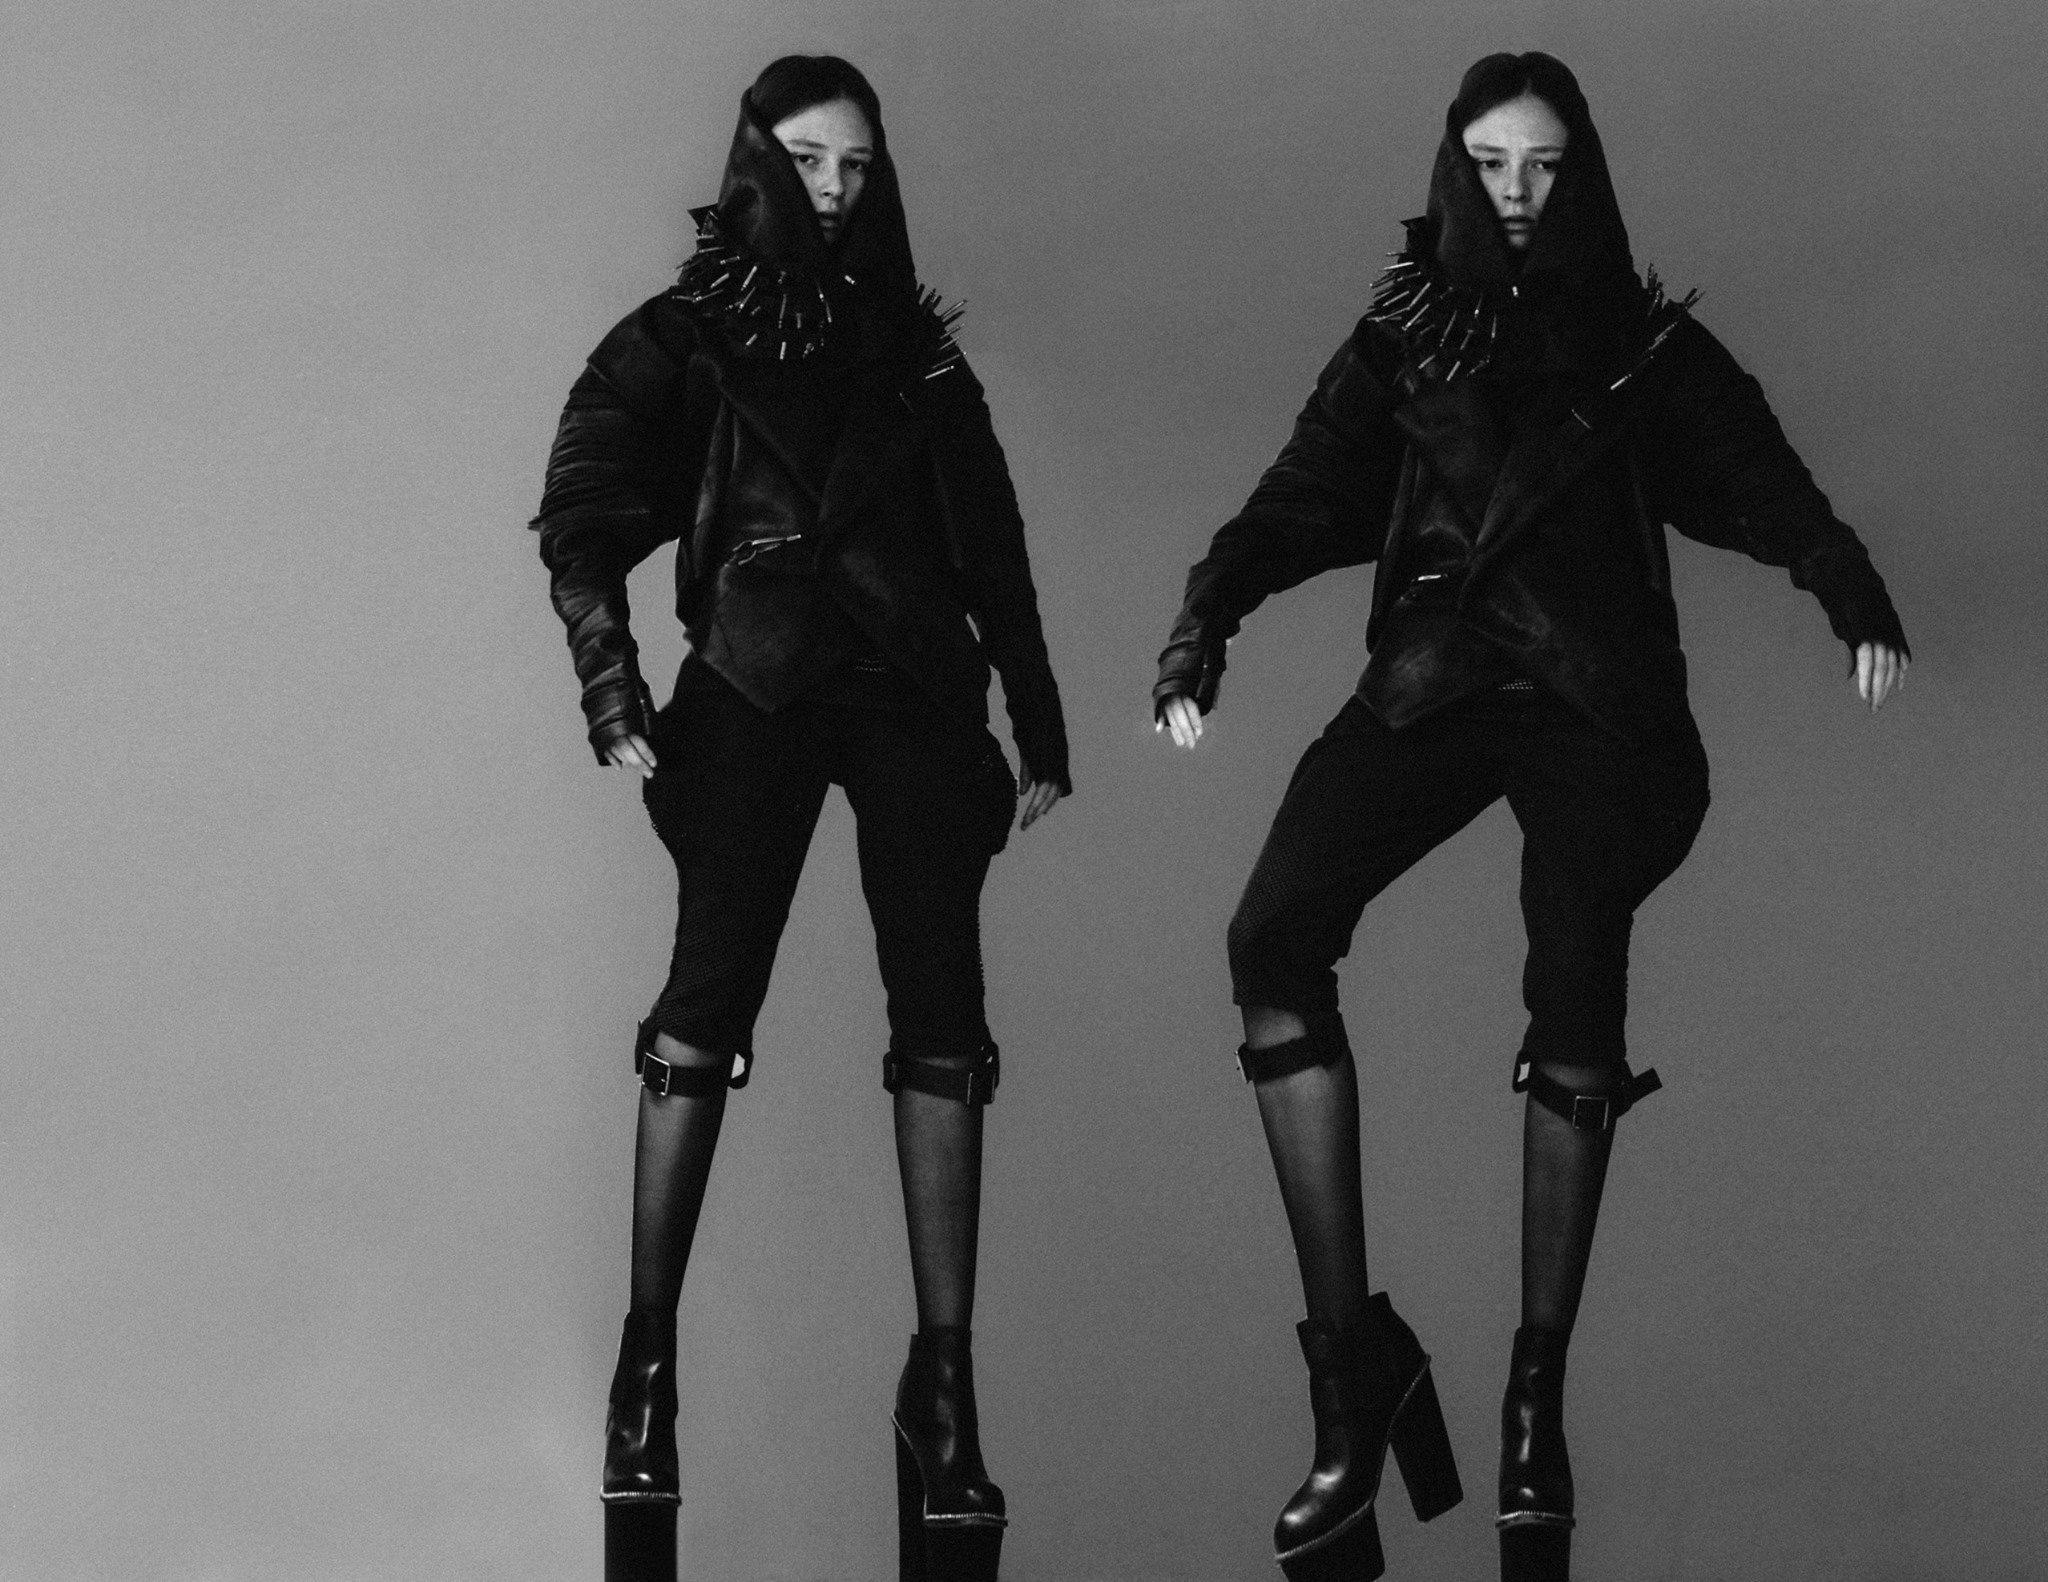 a_shaded_view_on_fashion_by_diane_pernet-diane_pernet-1729681110.jpg